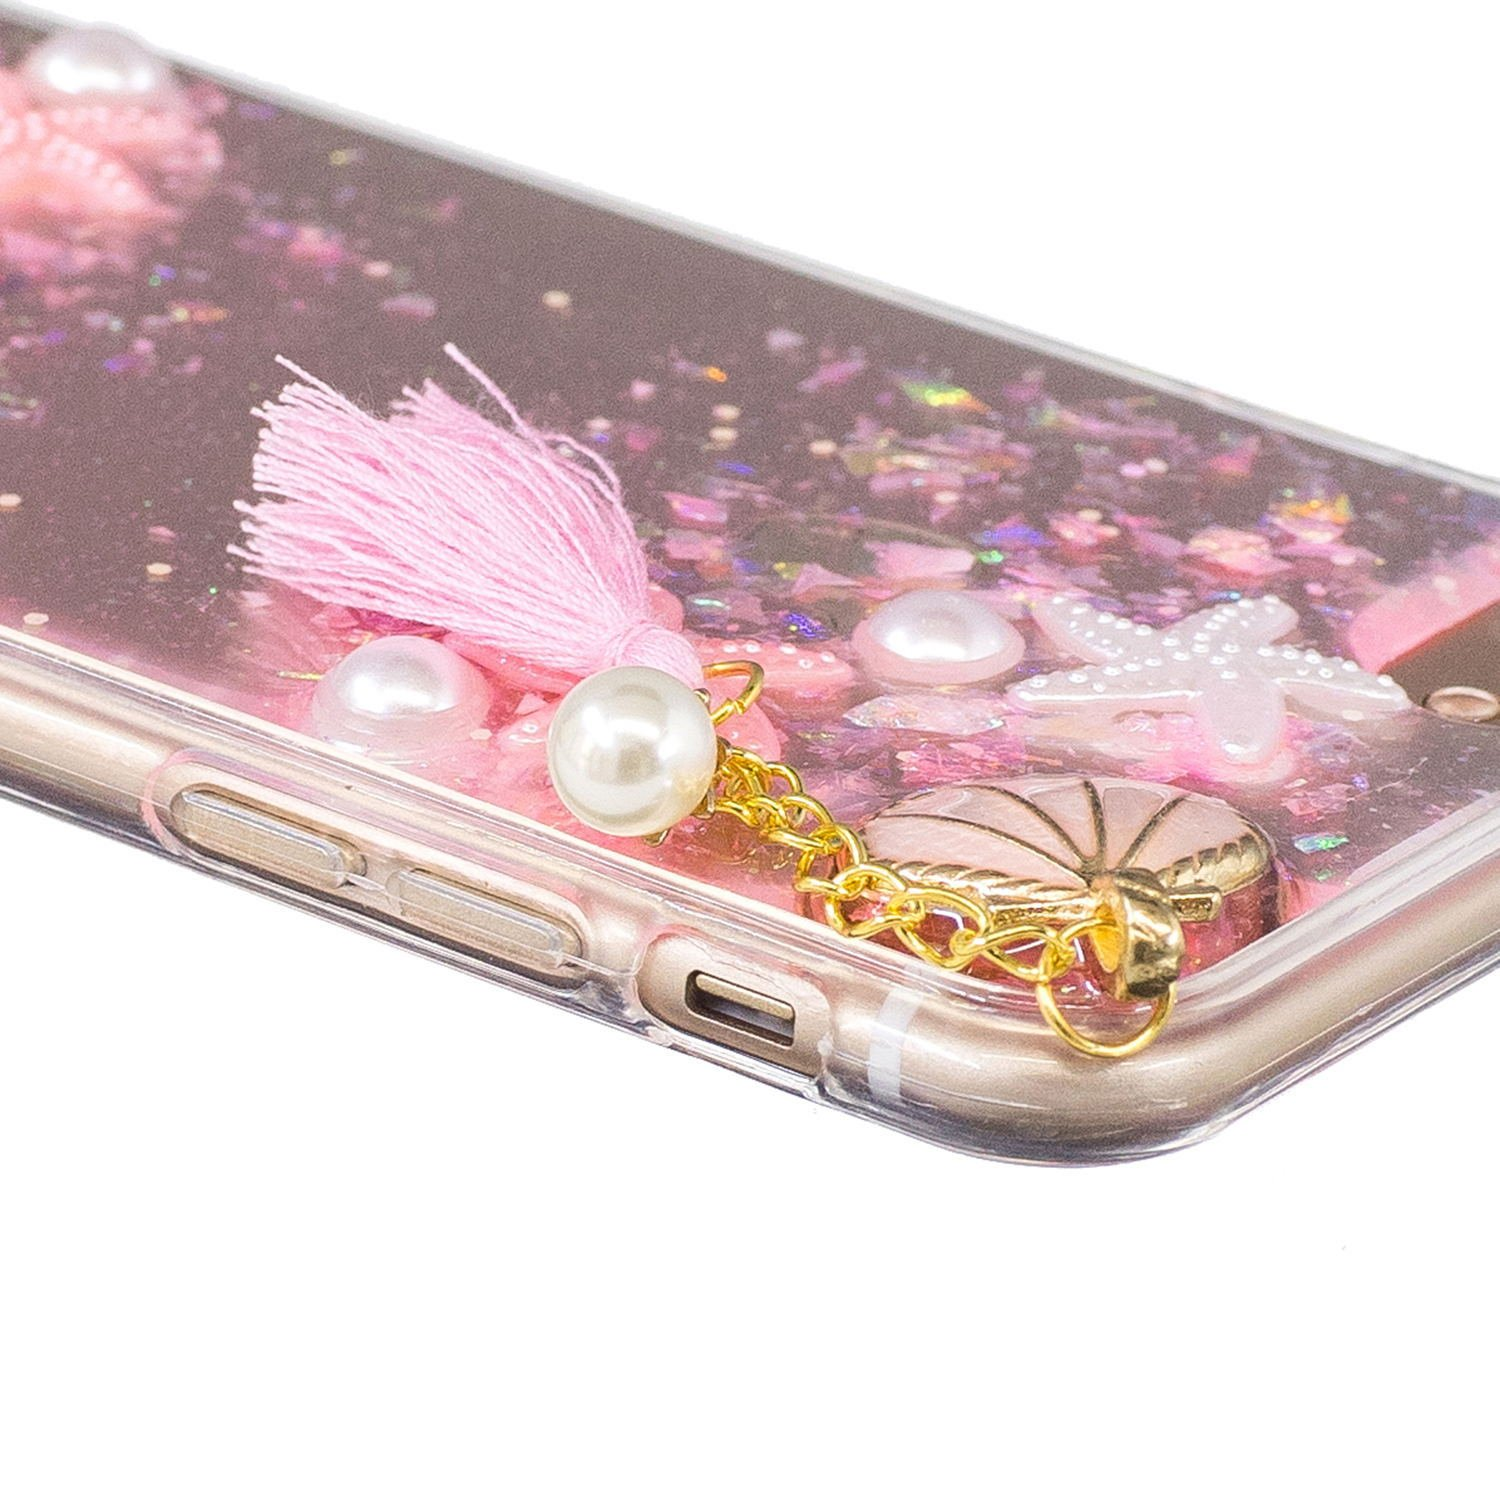 Amazon.com: iPhone 6 Funda, iPhone 6S funda, tipfly Bling ...